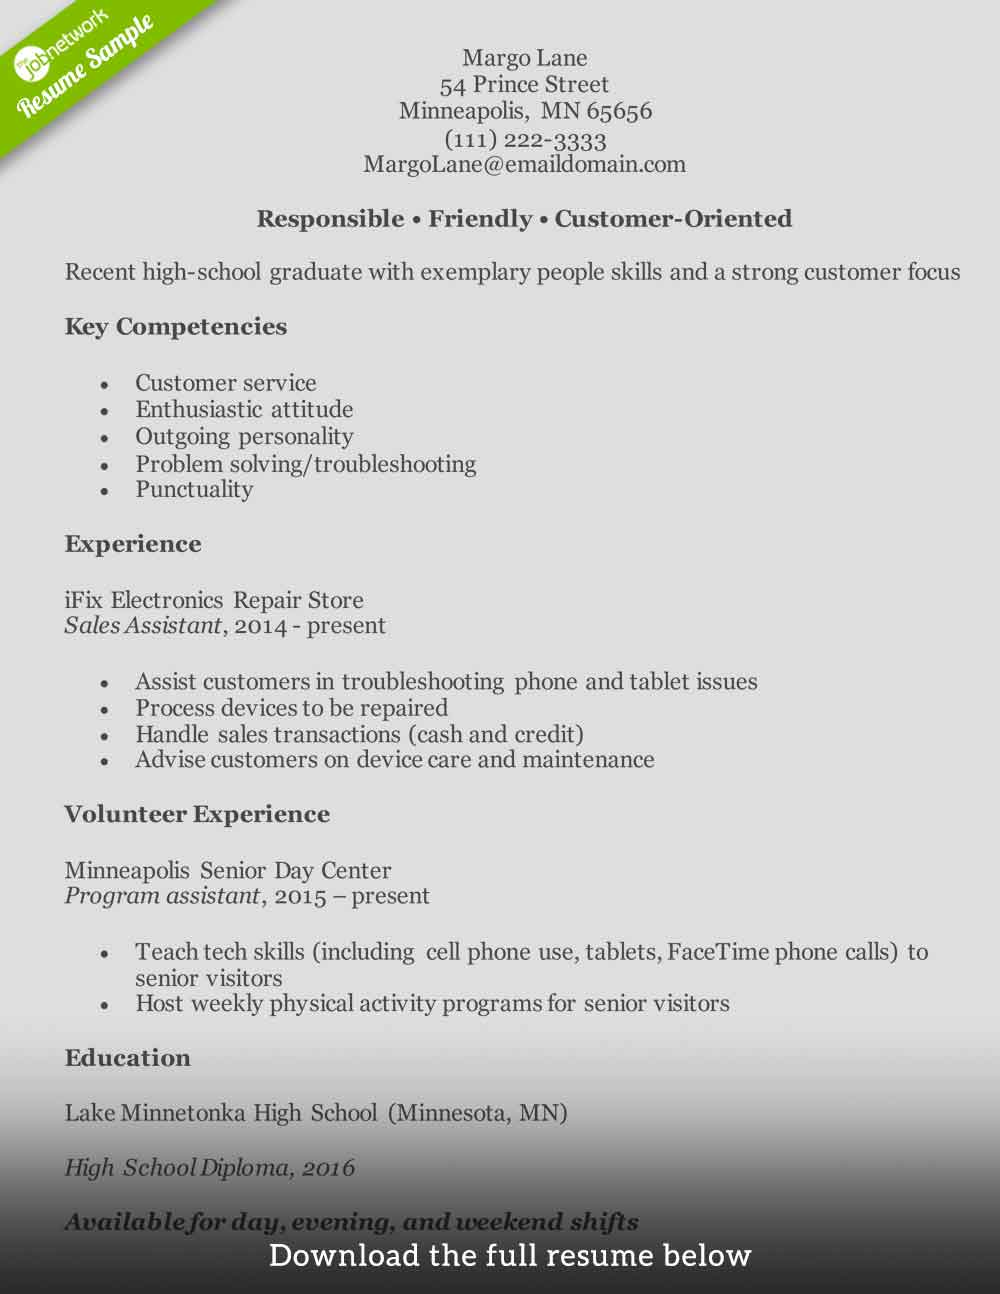 Customer Service Resume -How to Write the Perfect One (Examples)